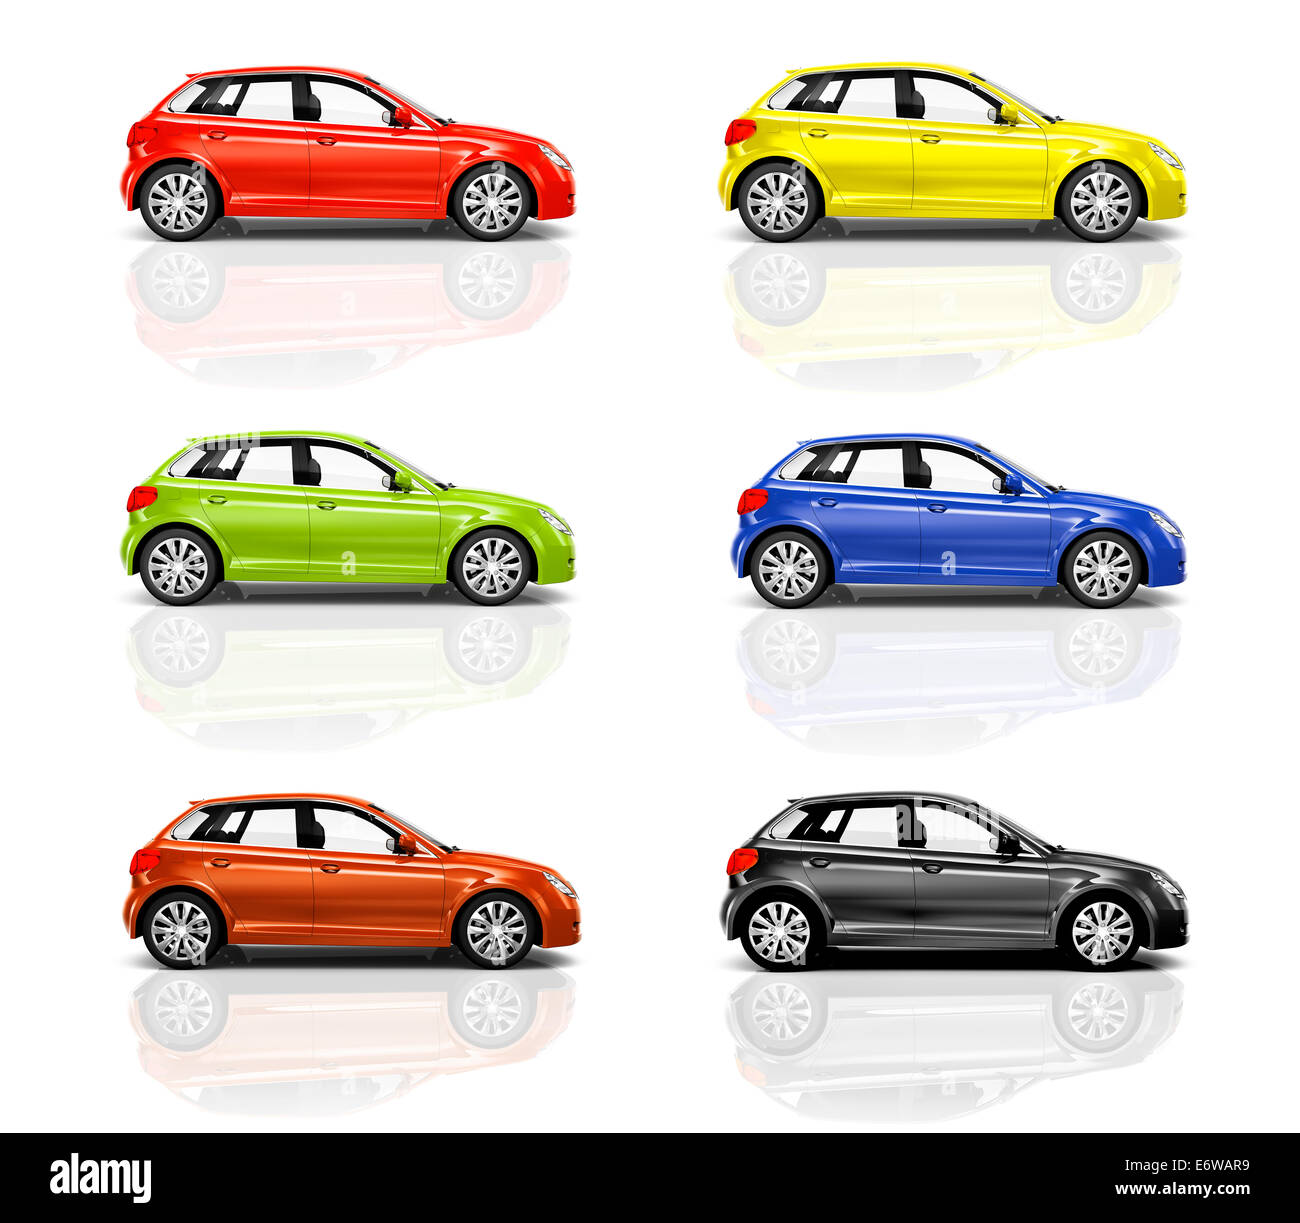 Collection of 3D Hatchback Cars - Stock Image